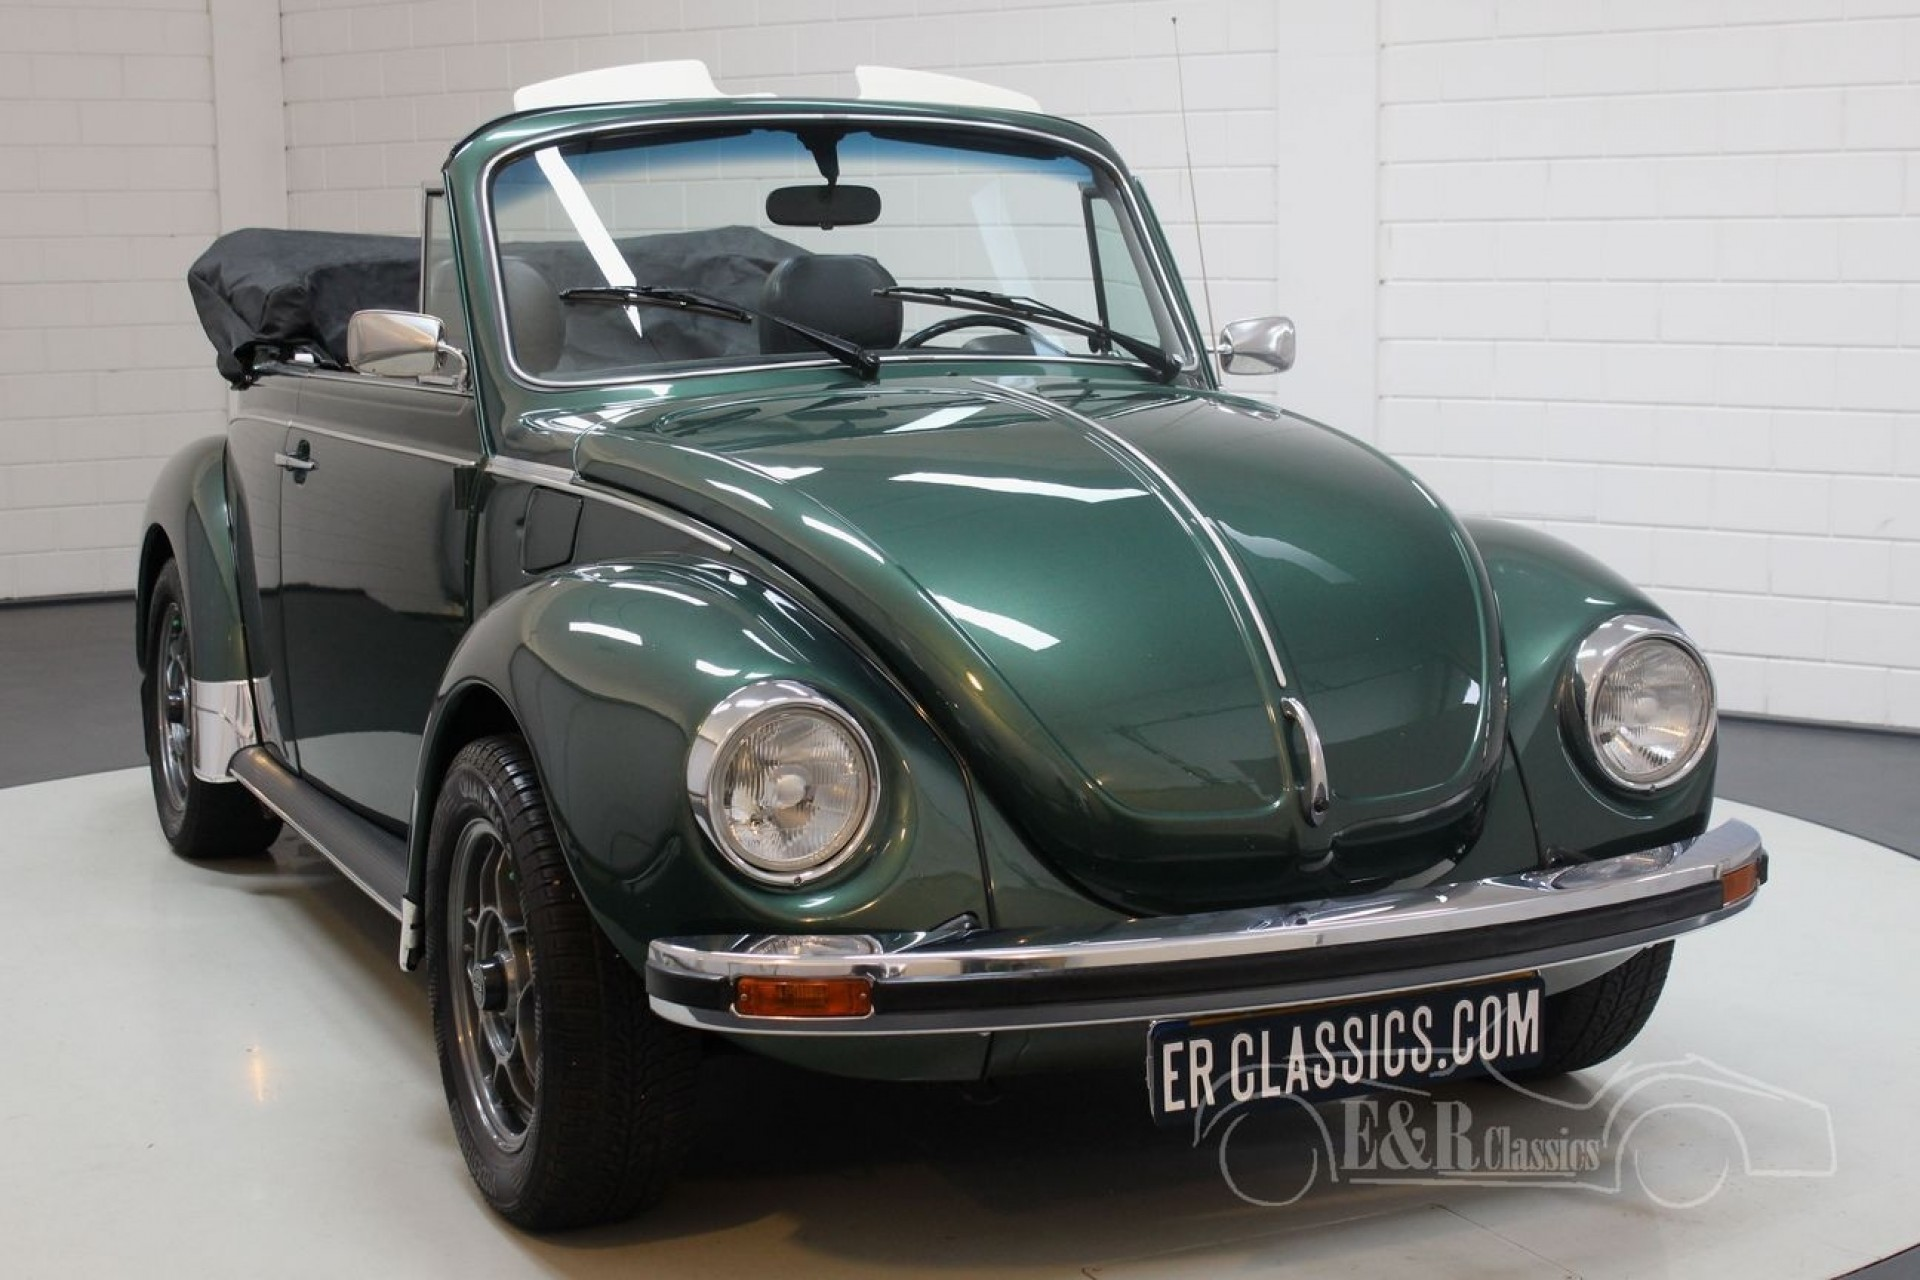 Volkswagen Beetle 1303 Ls Convertible 1975 For Sale At Erclassics